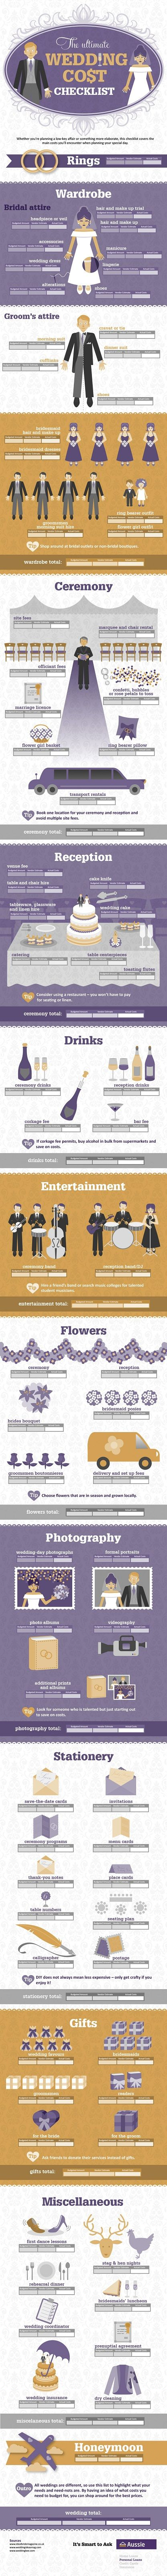 The Ultimate Wedding Cost Checklist Infographic image Wedding Checklistresize